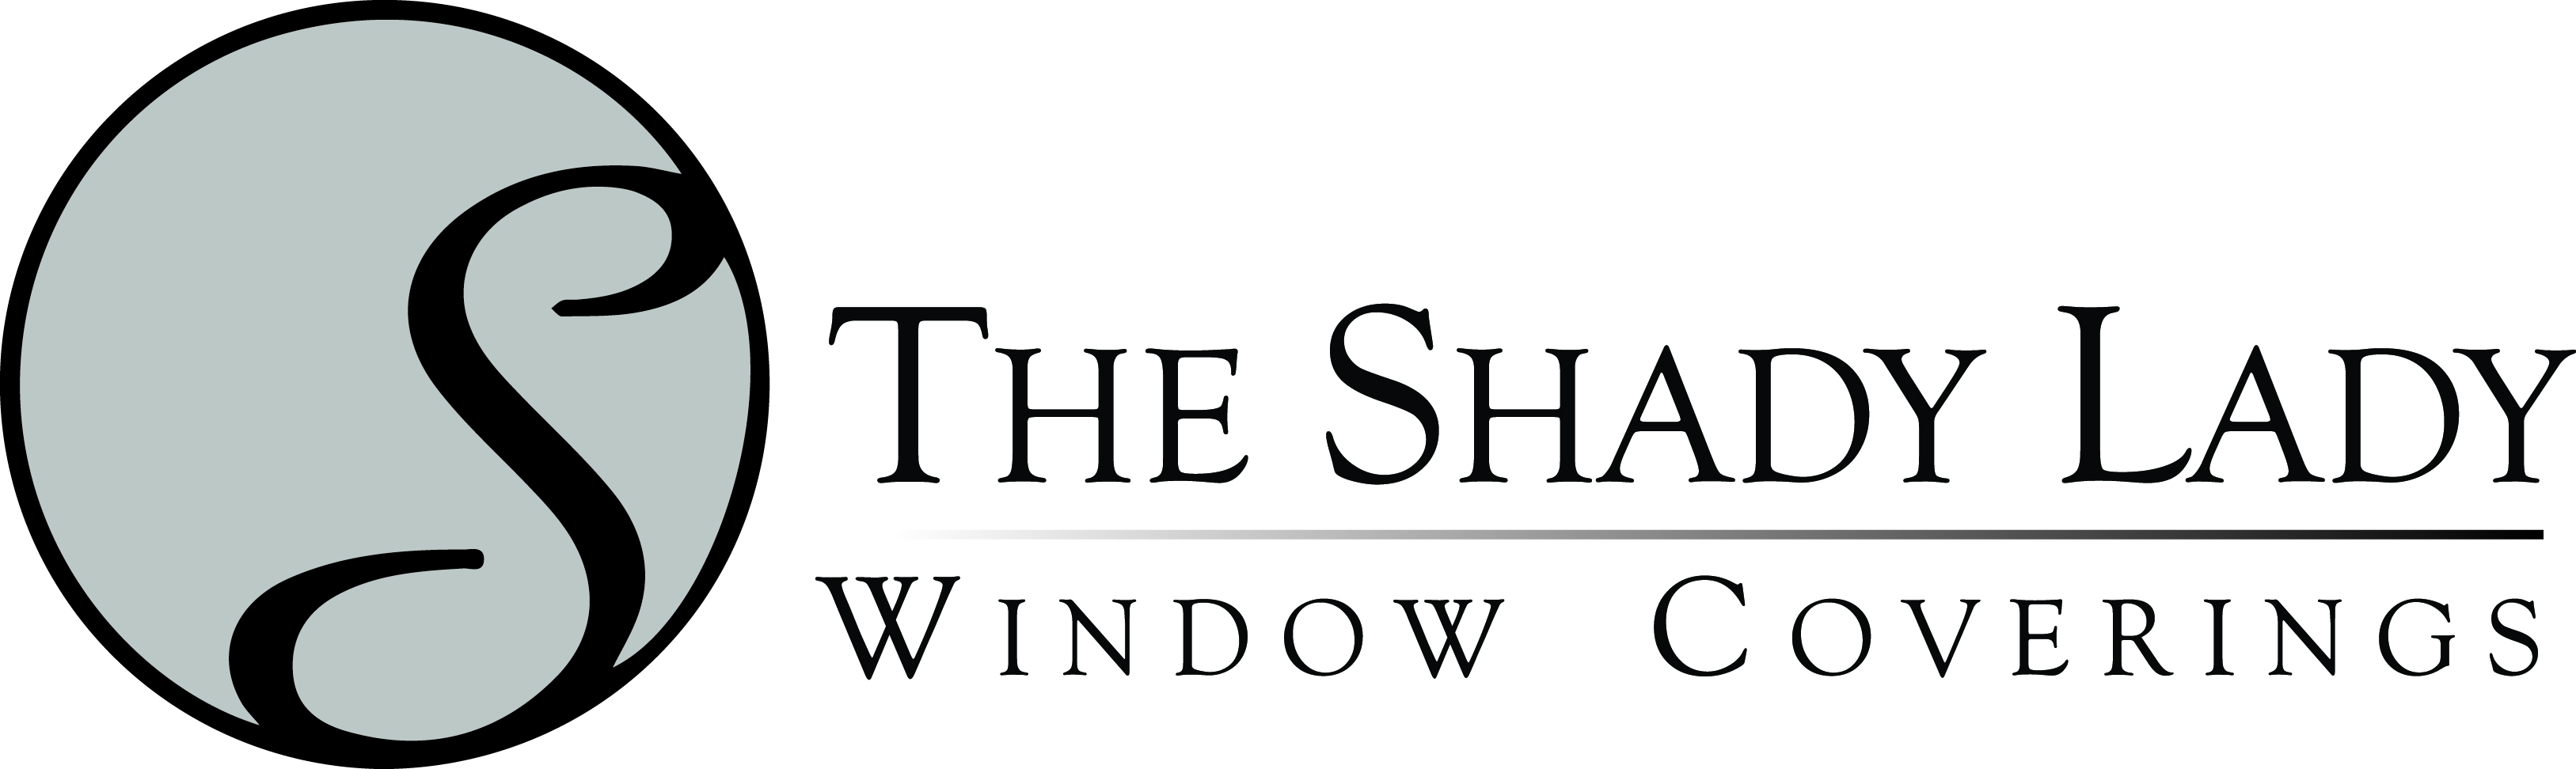 The Shady Lady Window Coverings